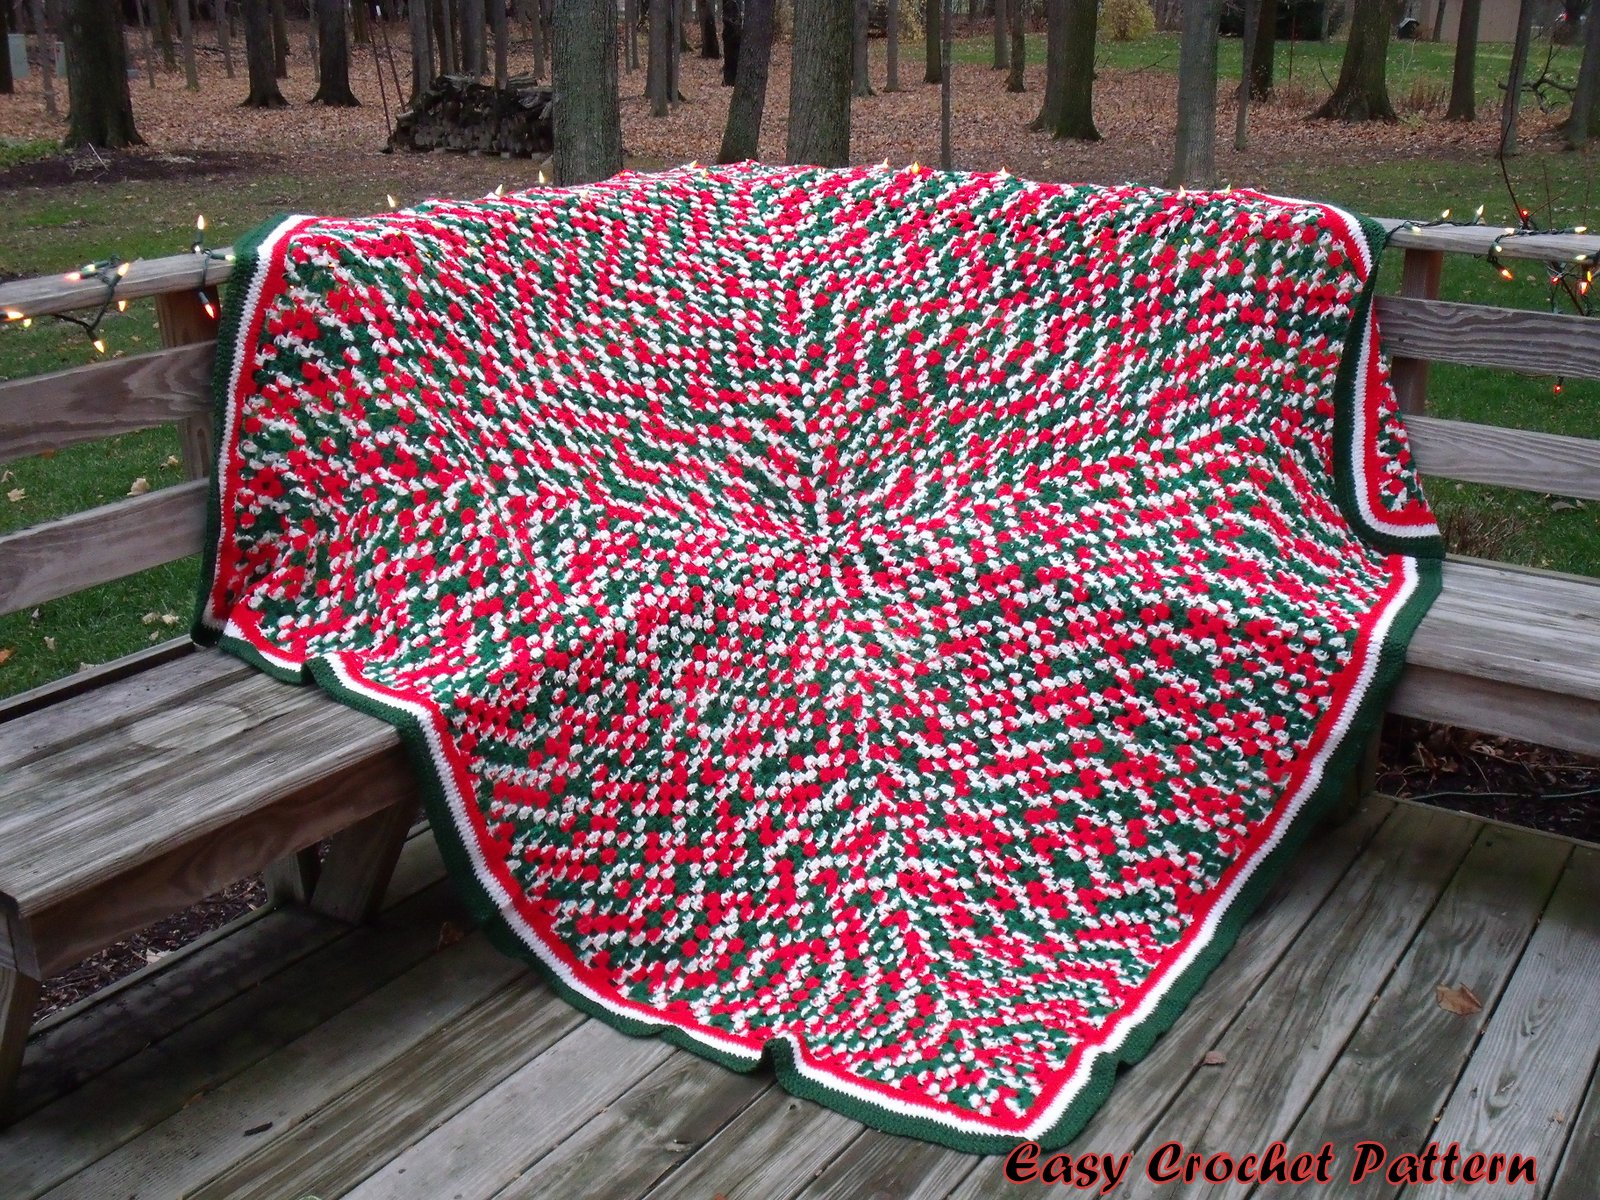 Crochet Pattern Afghan : Easy Crochet Pattern: Crocheted Christmas Afghans and Tree ...